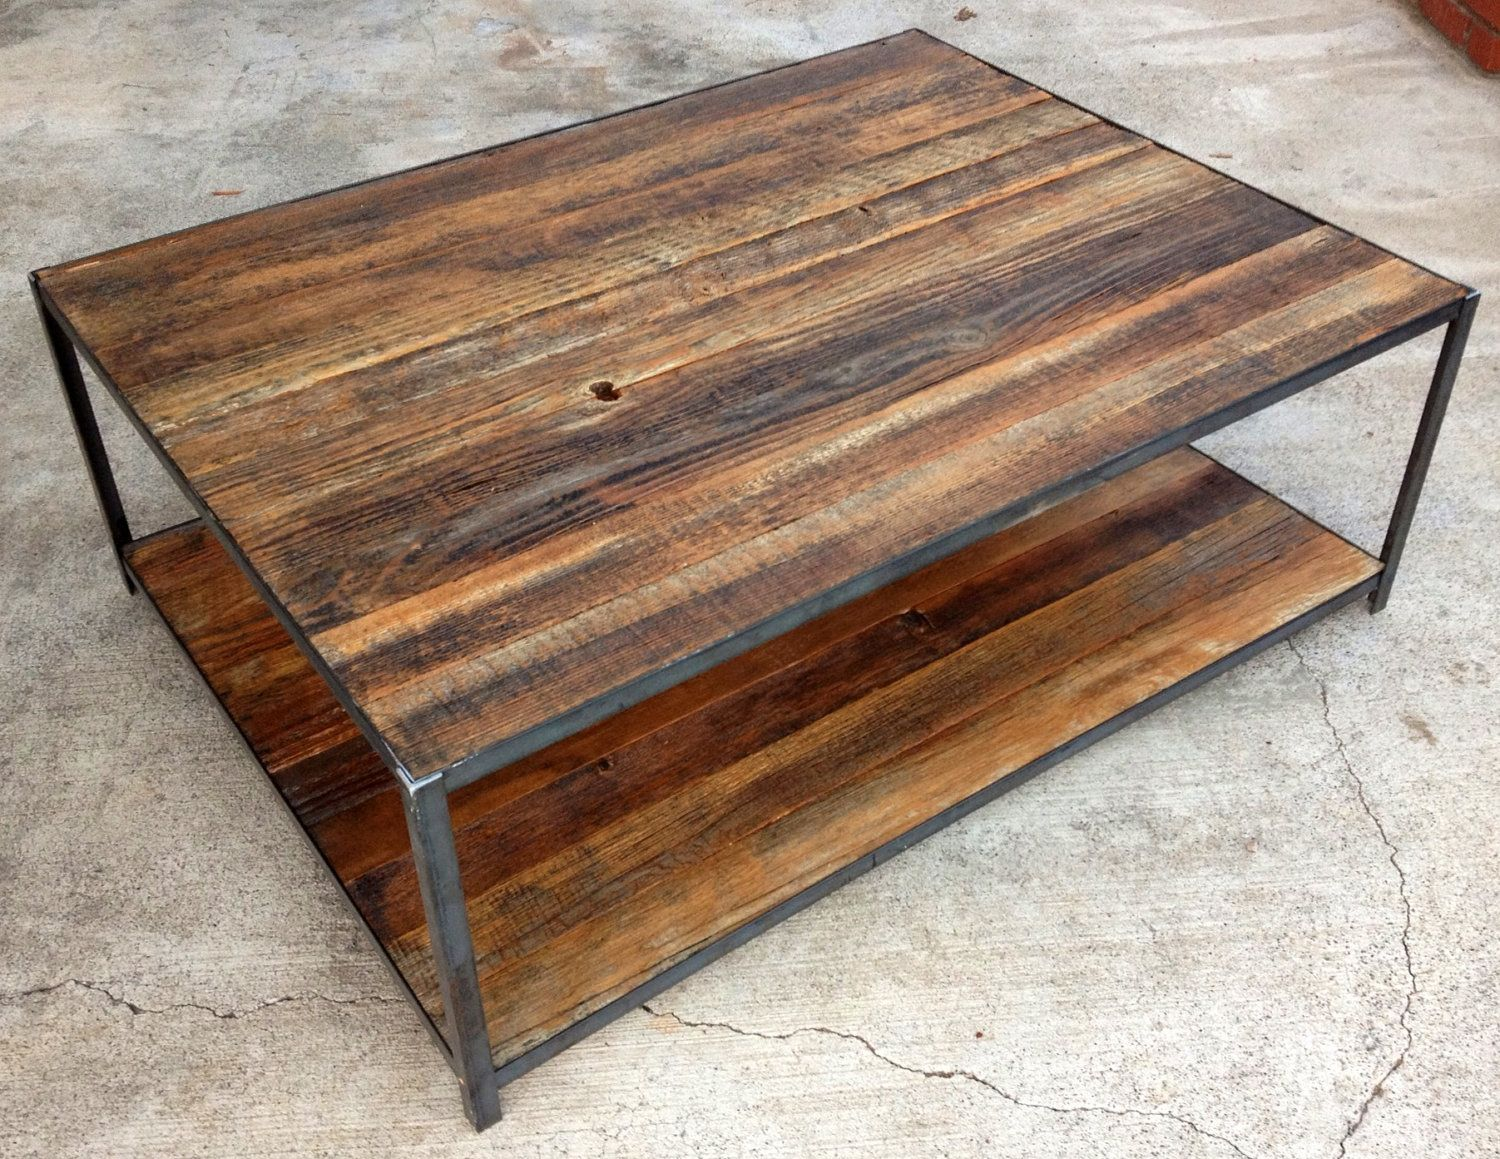 reclaimed wood and angle iron coffee table 40000 via etsy furniture ideas i